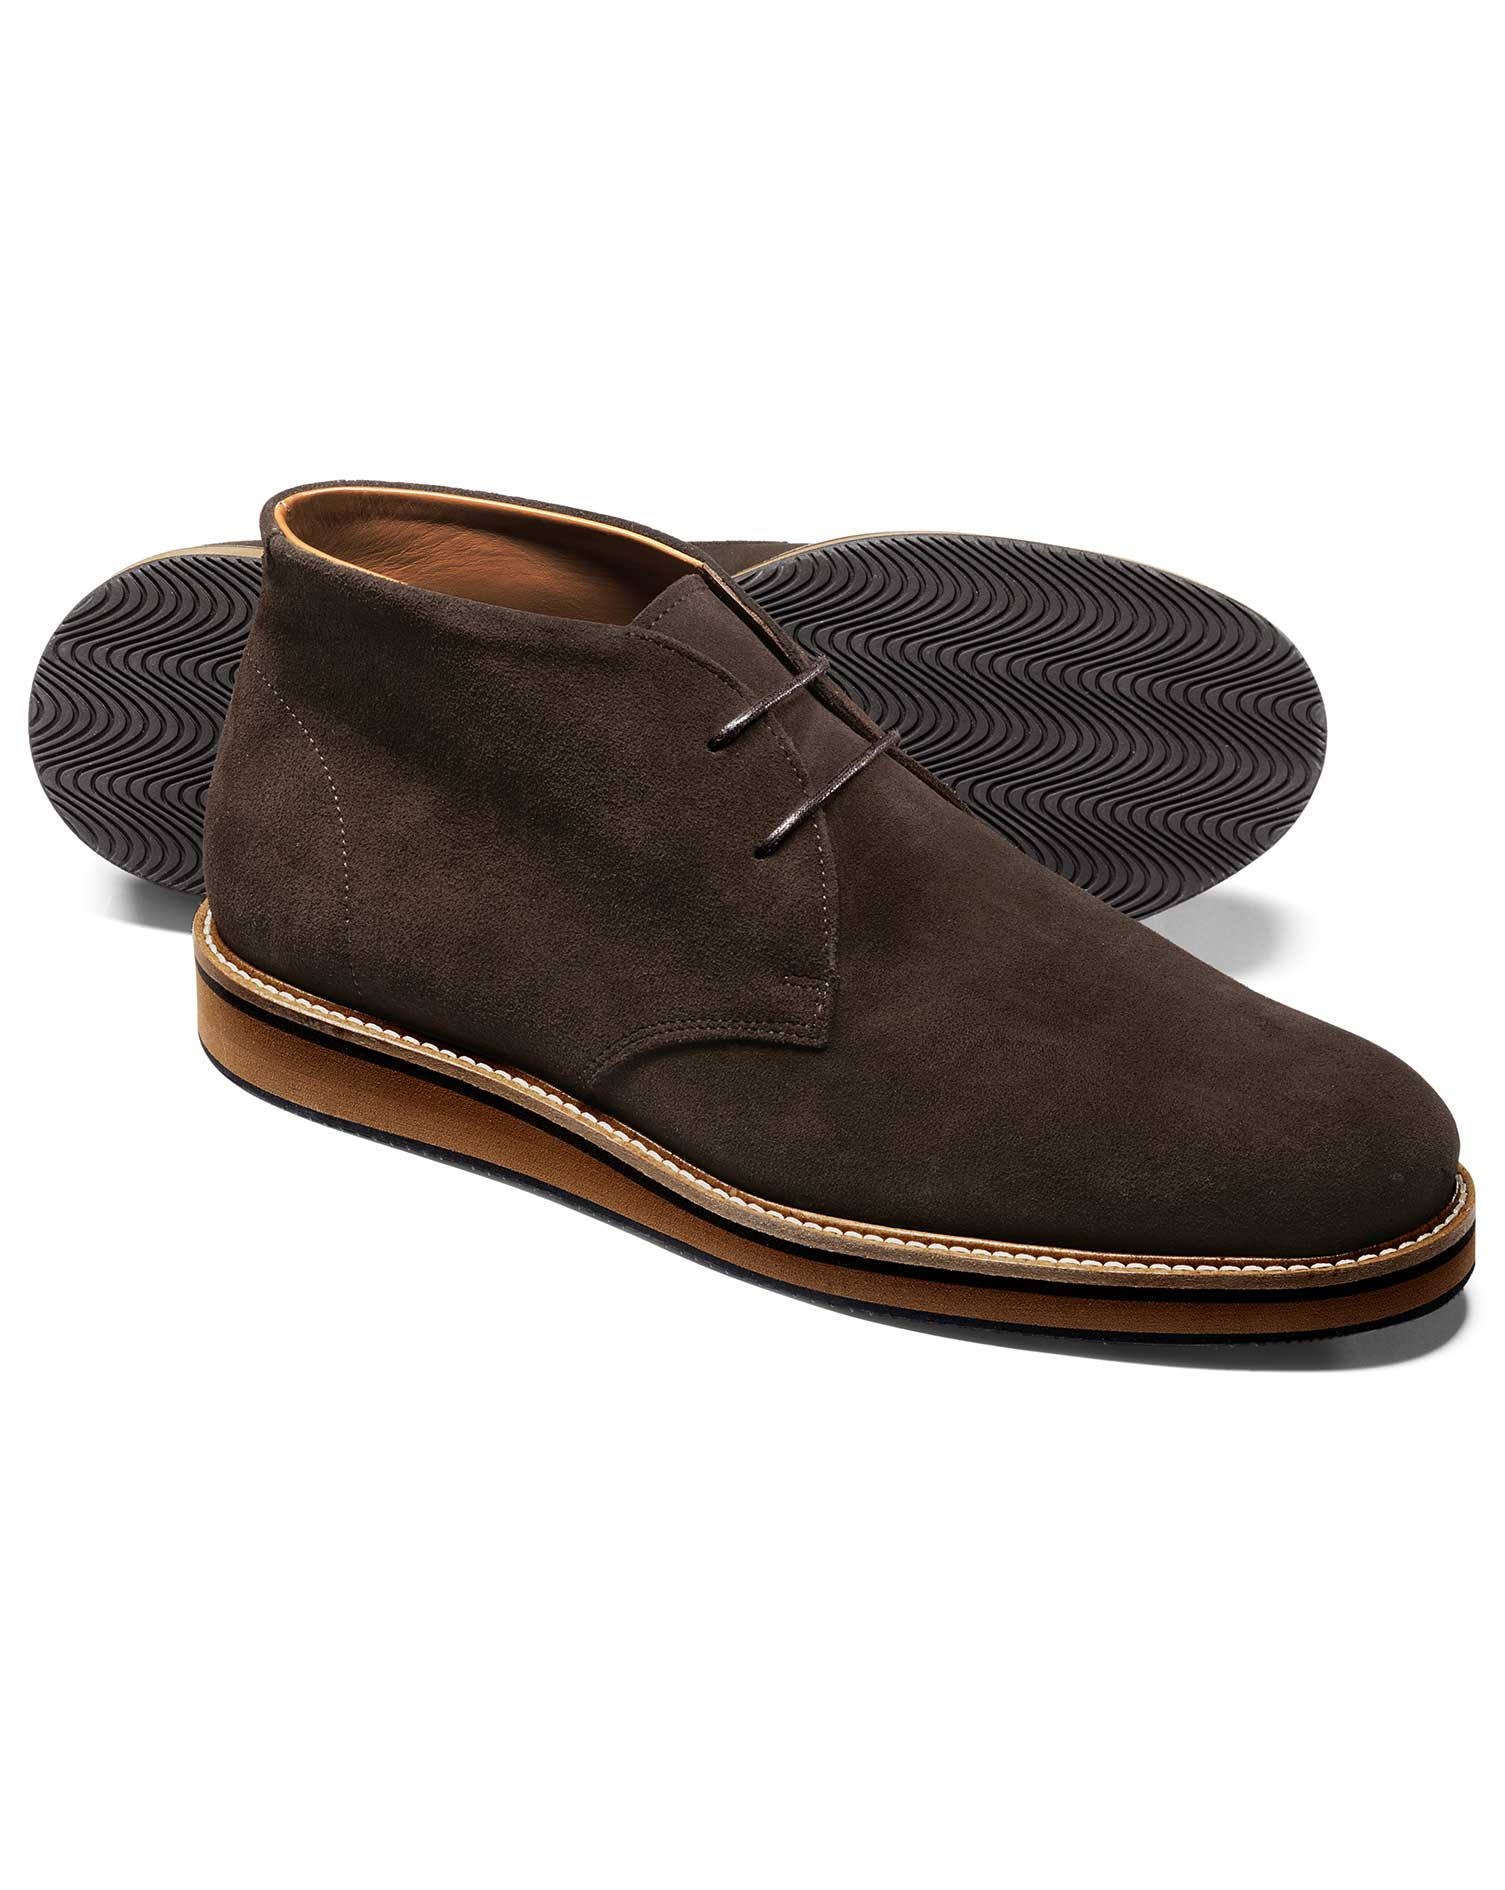 Chocolate Suede Lightweight Chukka Boot Size 6 R by Charles Tyrwhitt